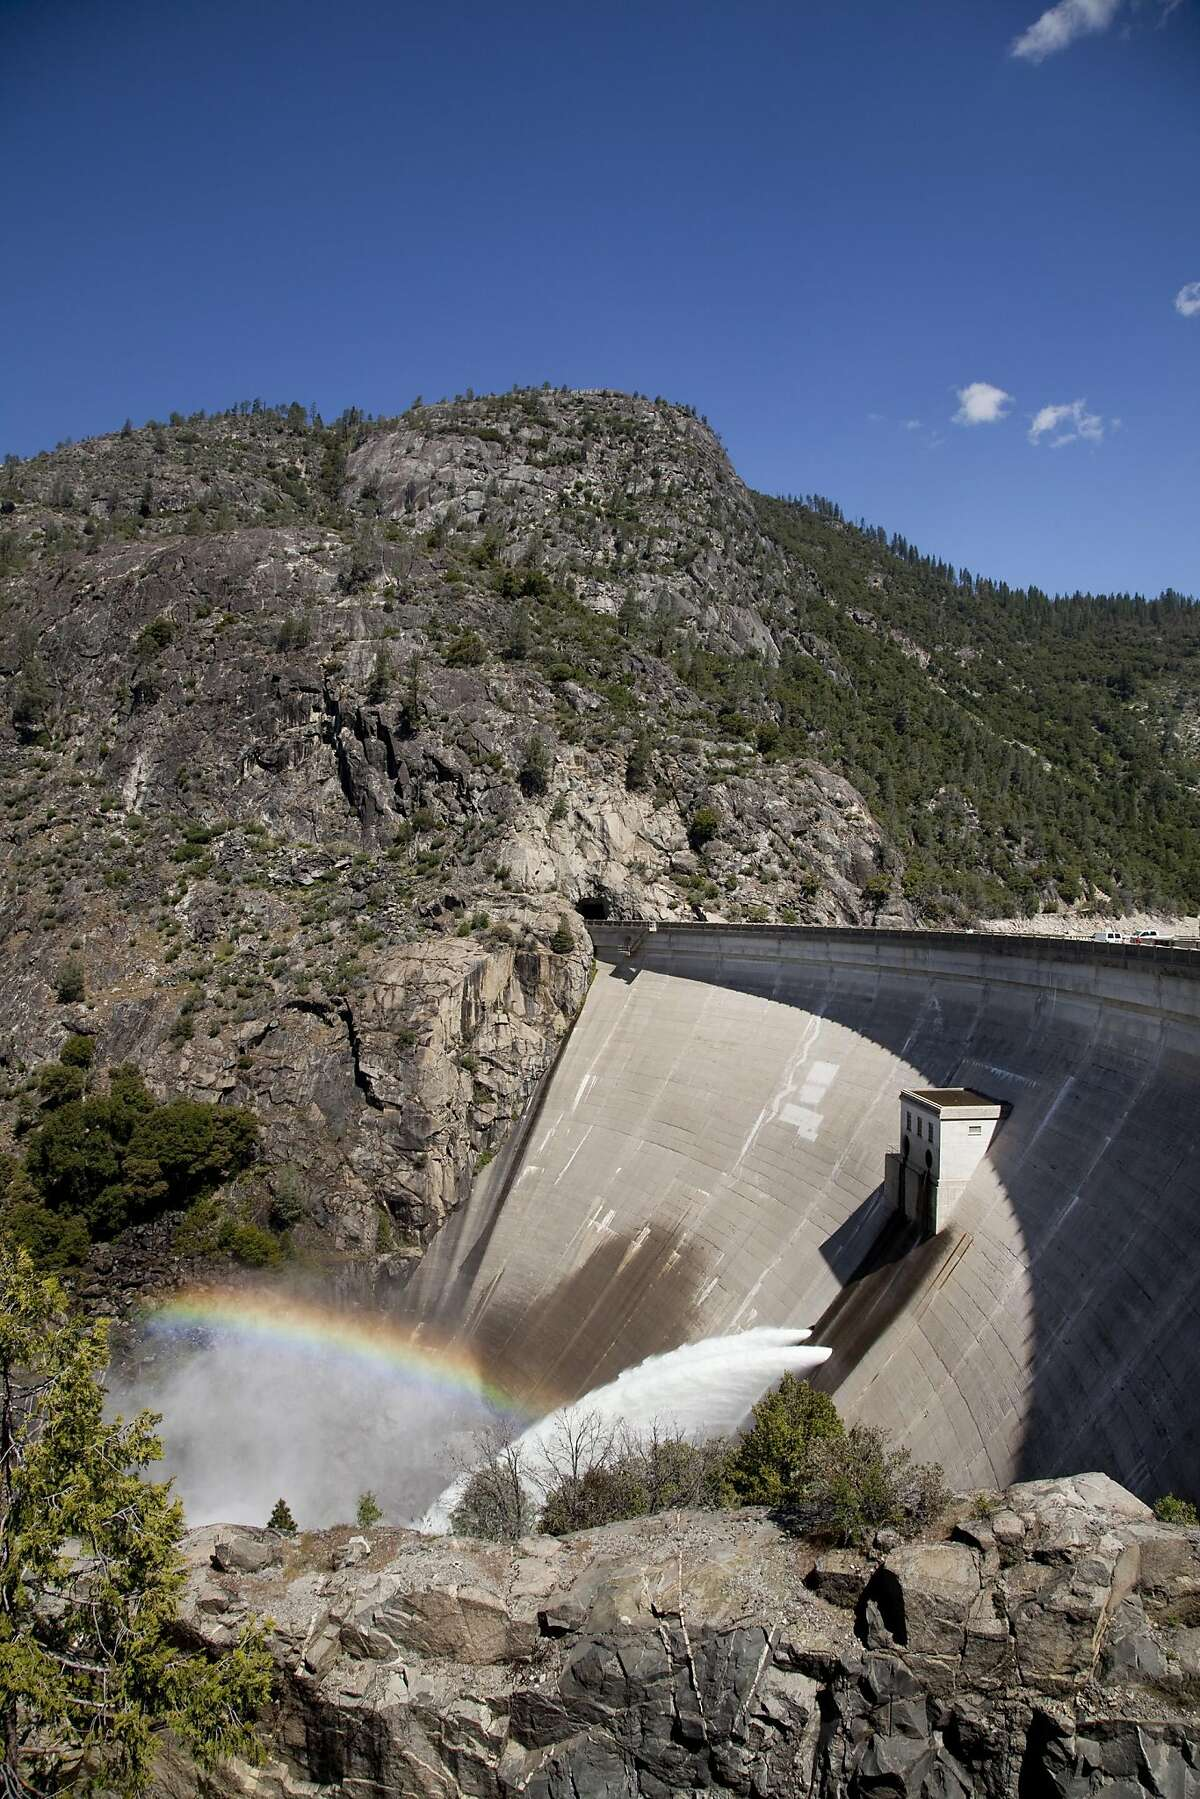 San Francisco may be required to pay more rent to the federal government for water from the Hetch Hetchy Reservoir or even tear down the O'Shaughnessy Dam. With very little snow water levels are down at the reservoir. Rep. Dan Lundgren says San Francisco is claiming rights to water it doesn't legally have.